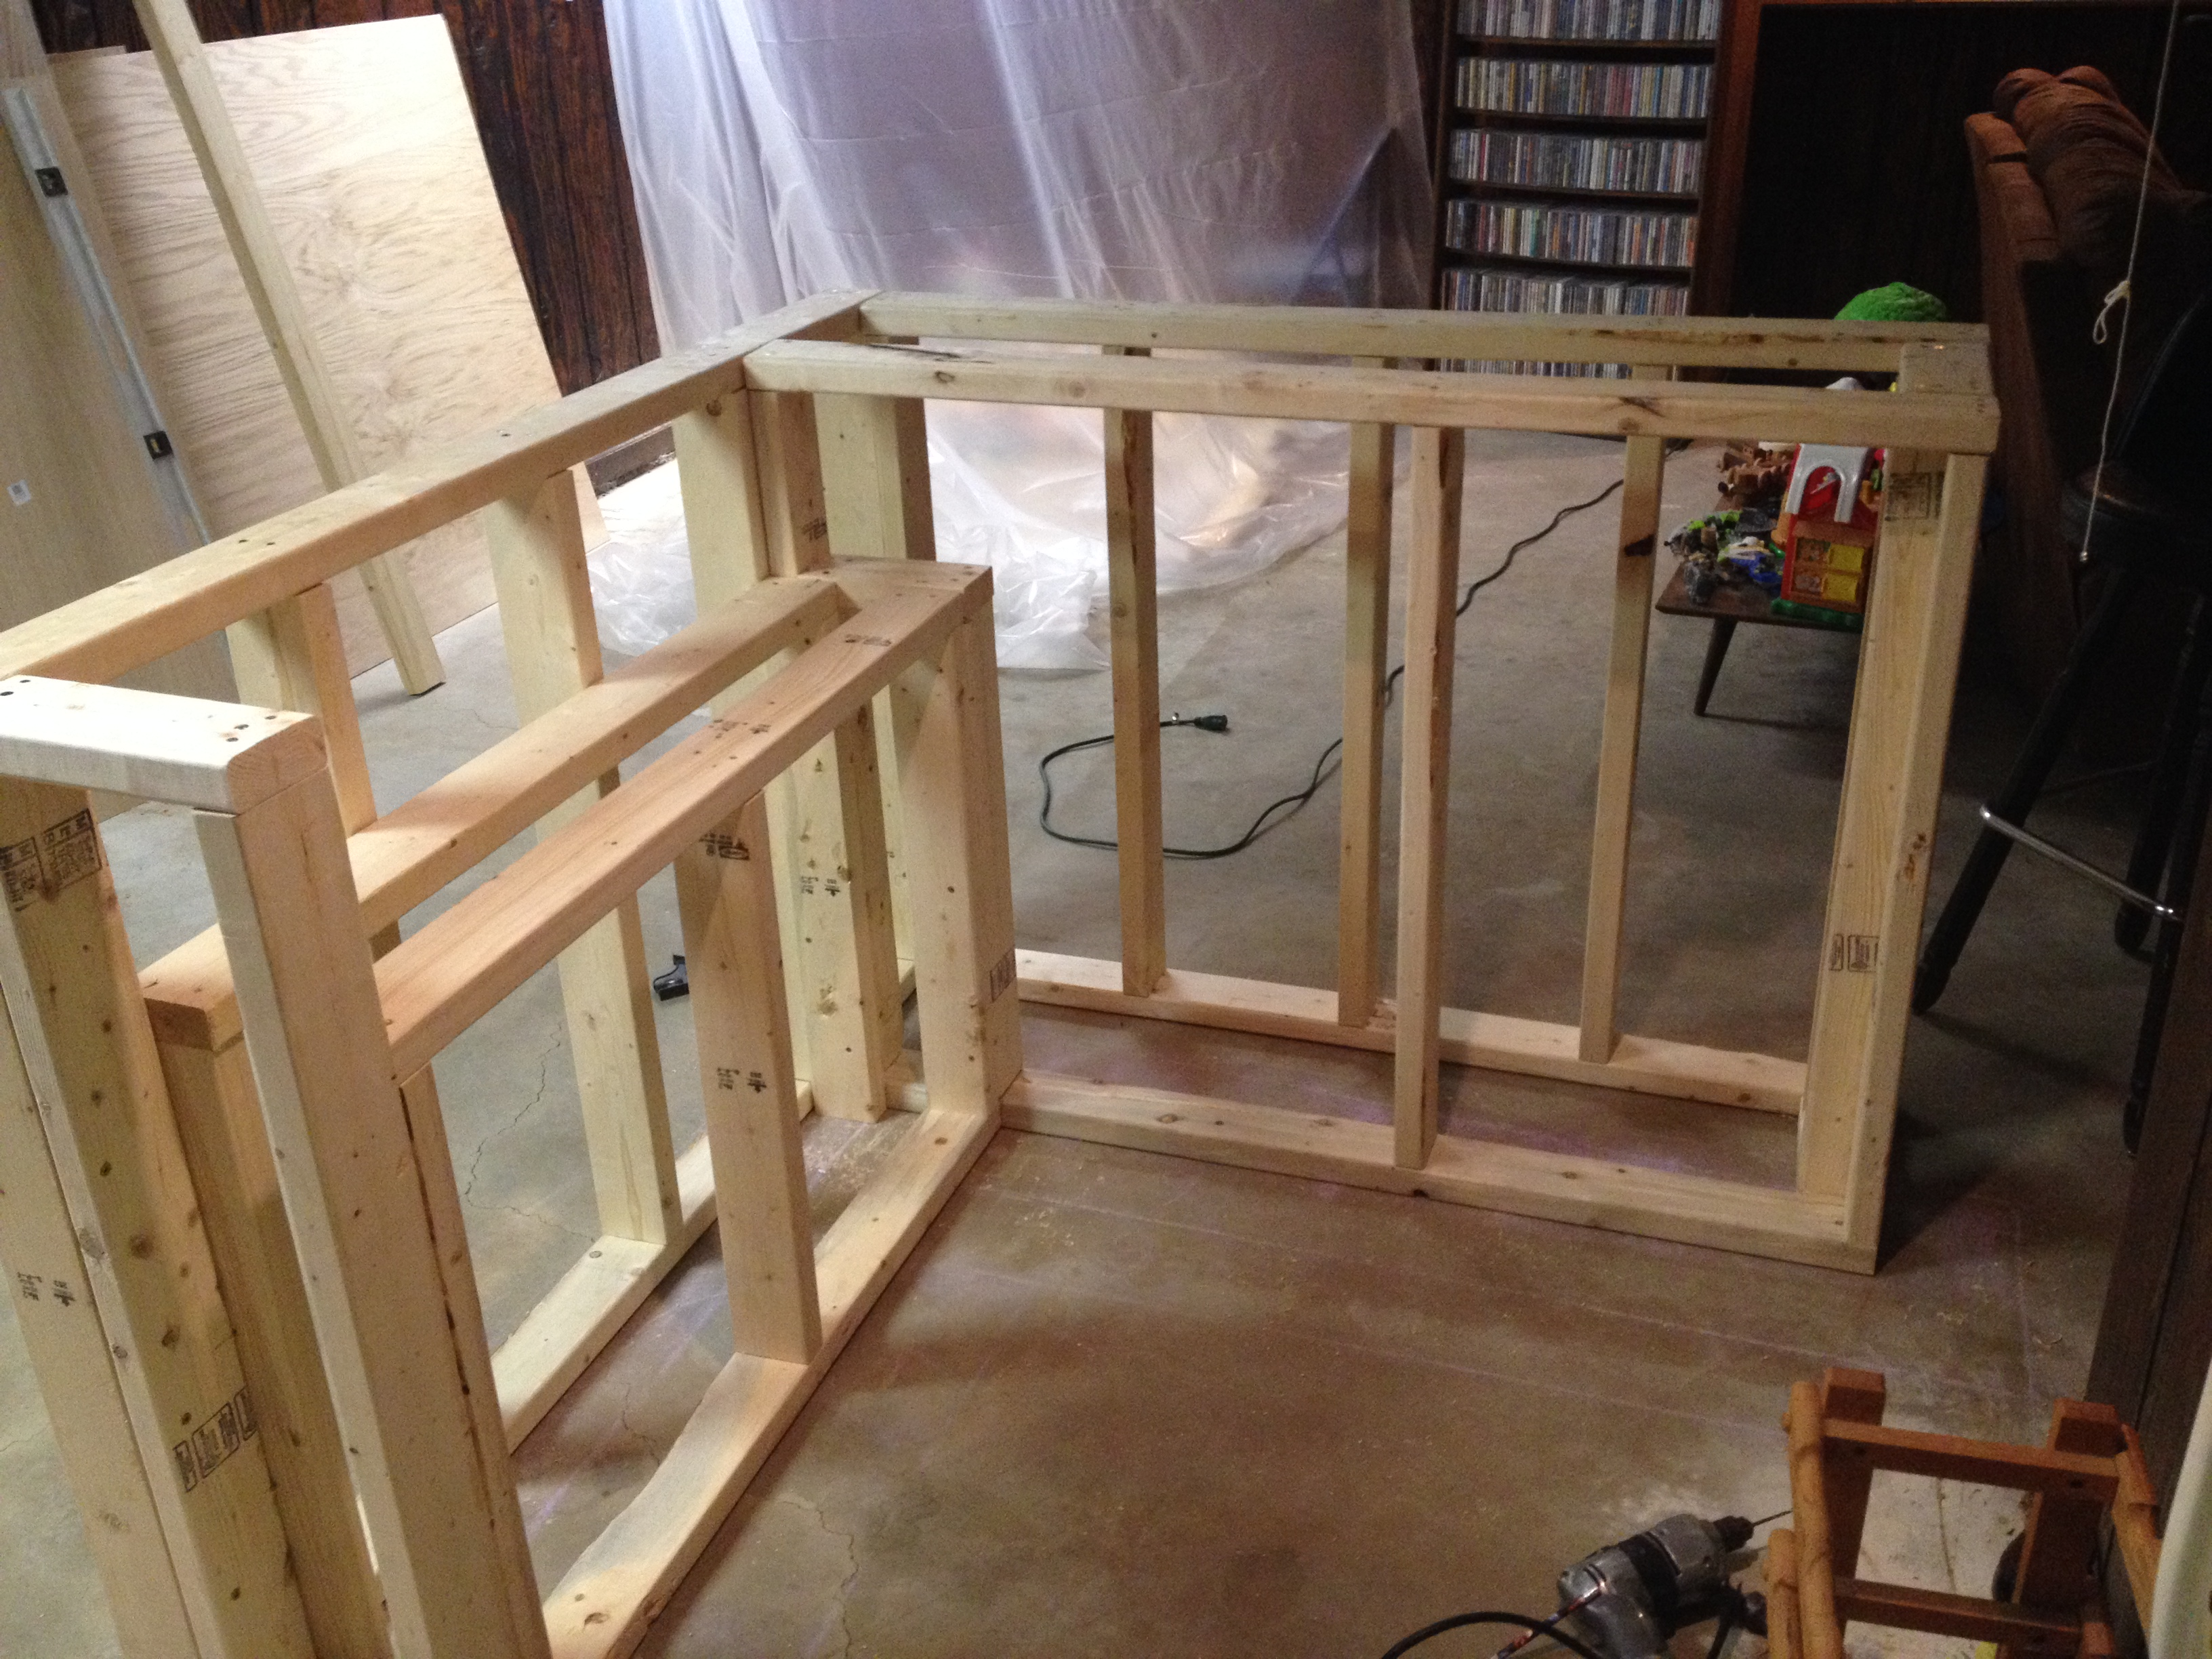 ... Bar frame with under cabinet roughed in